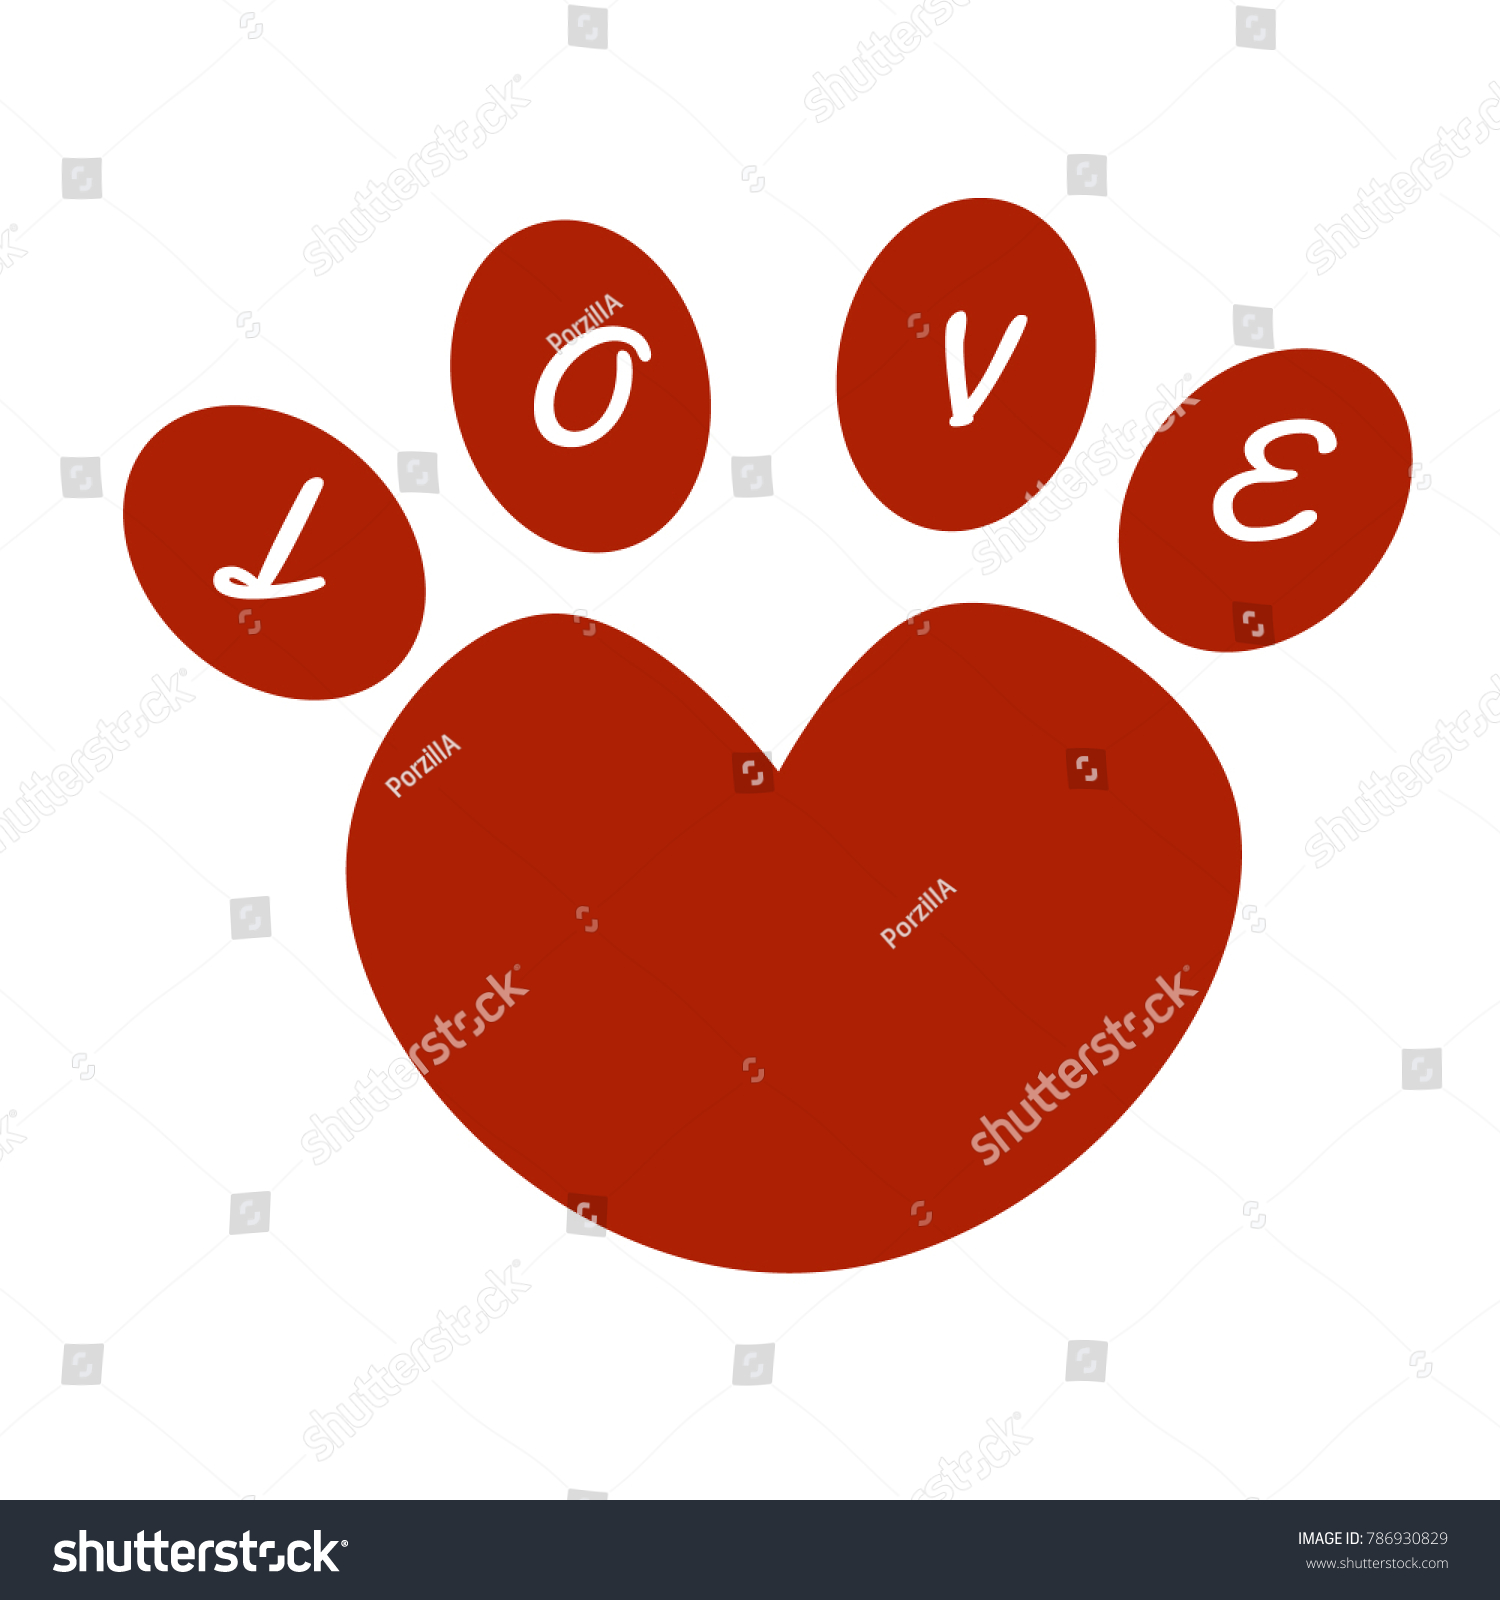 Symbol pics for texting images symbol and sign ideas heart shape love texting on animal stock vector 786930829 heart shape and love texting on an biocorpaavc Image collections